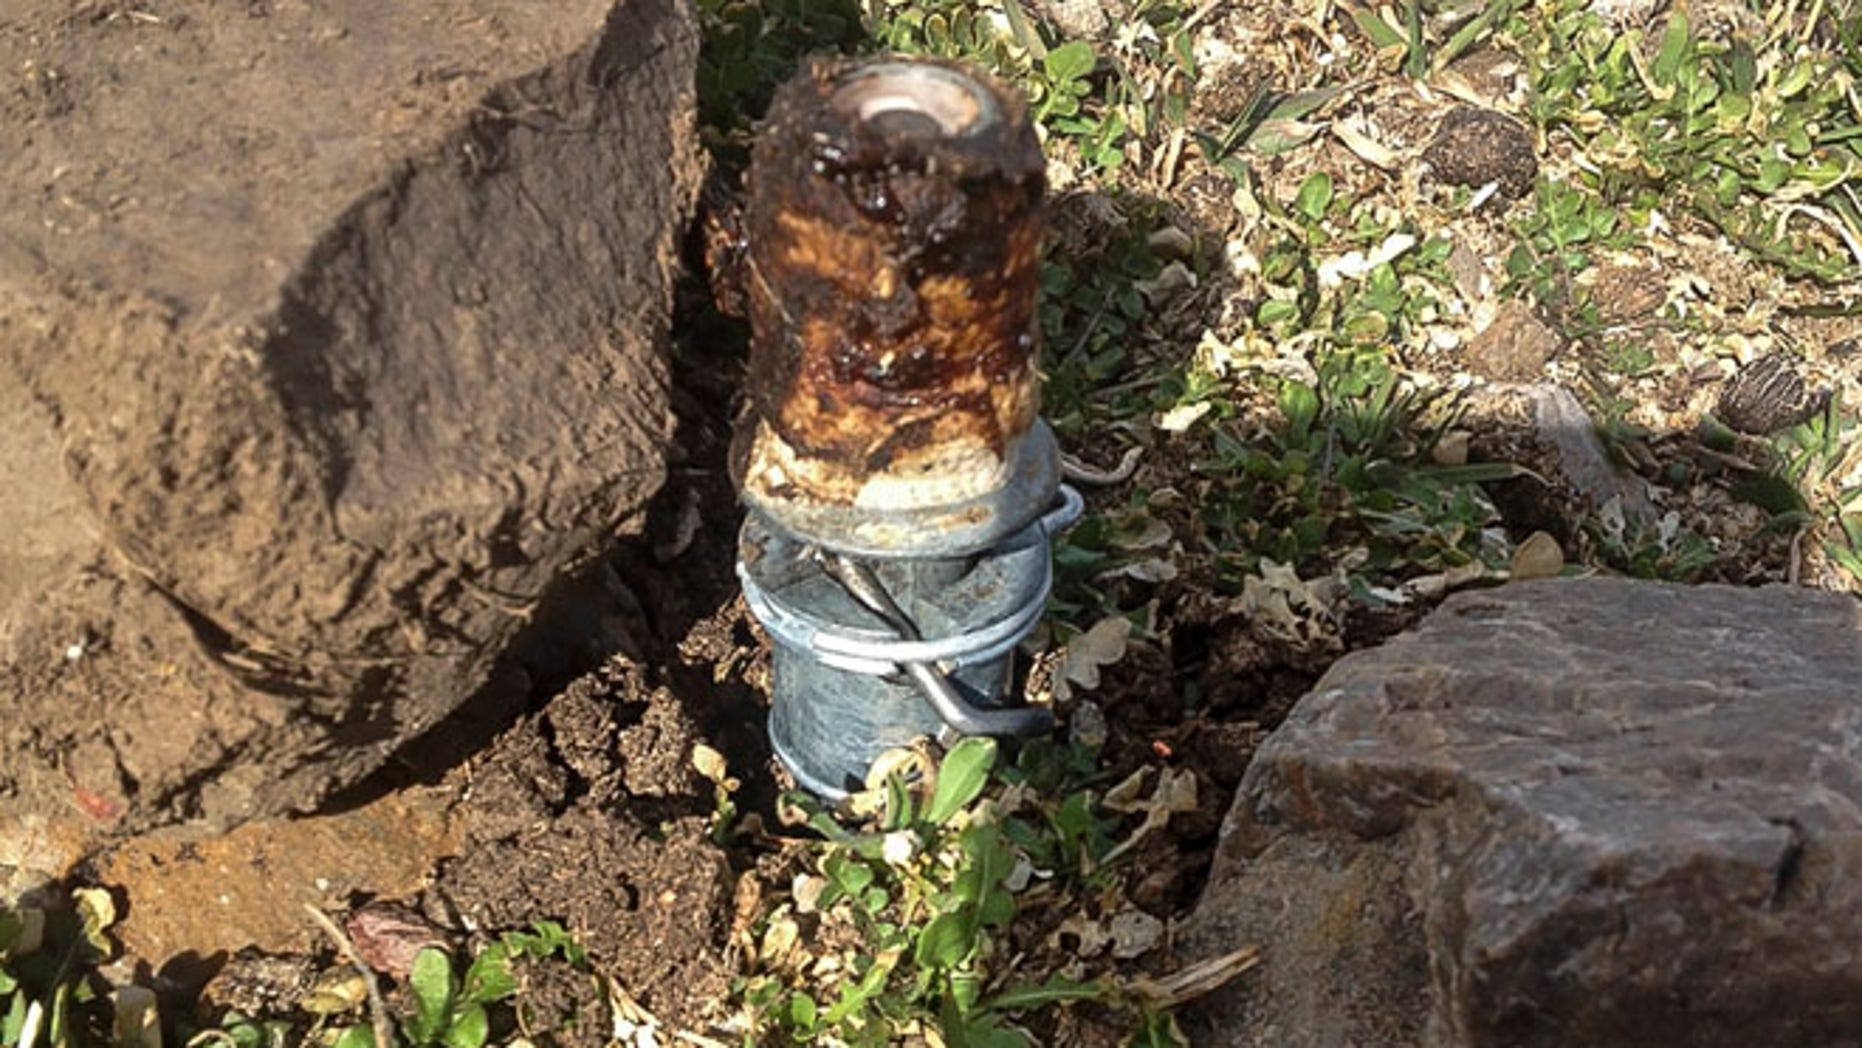 MARCH FILE: An M-44 cyanide device in Pocatello, Idaho It's spring-activated and shoots poison that is meant to kill predators.